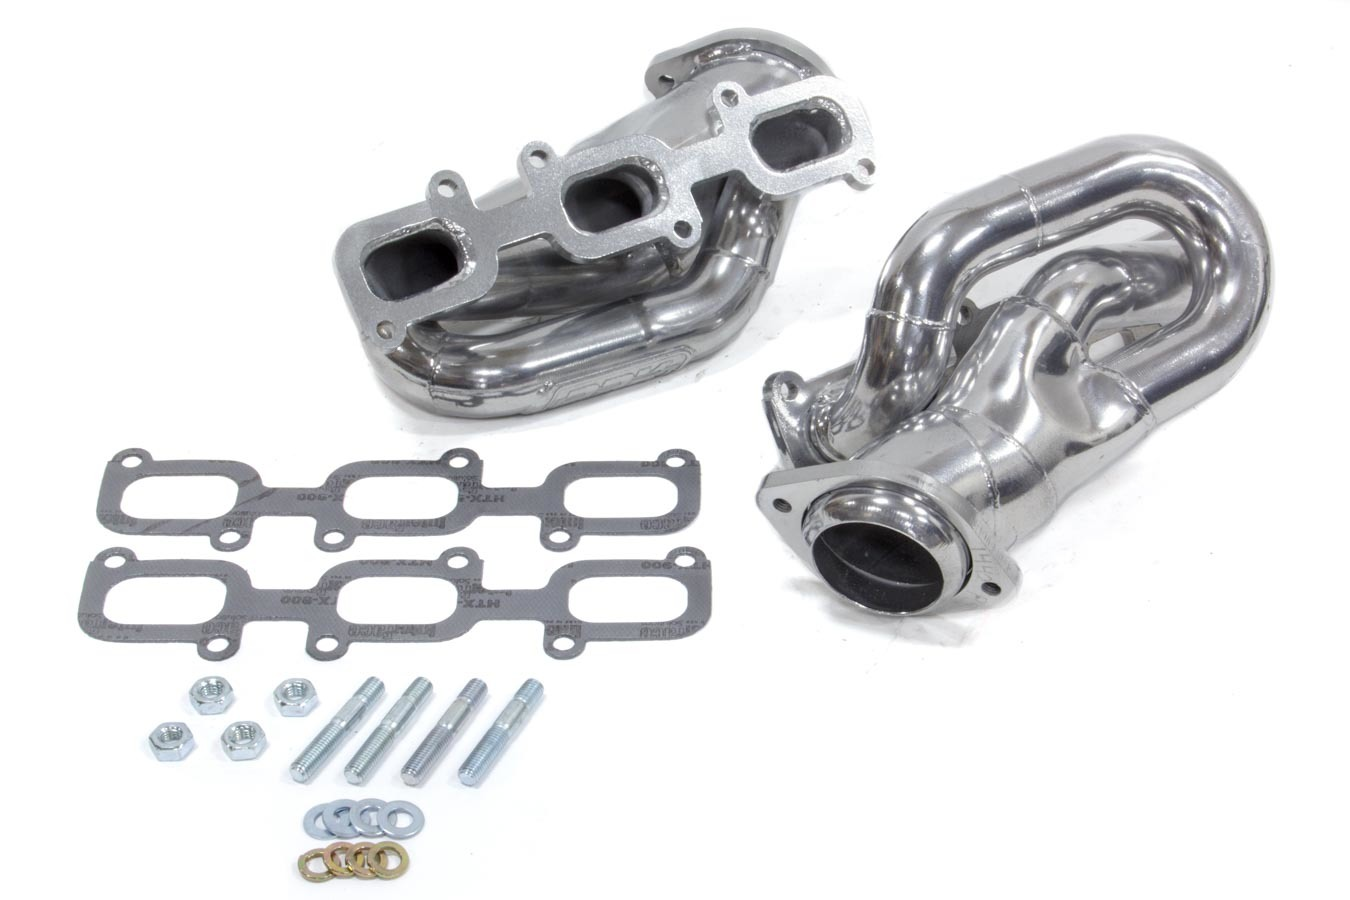 BBK Performance 14420 Headers, Tuned Length Shorty, 1-5/8 in Primary, Stock Collector Flange, Steel, Metallic Ceramic, Ford V6, Ford Mustang 2011-14, Kit